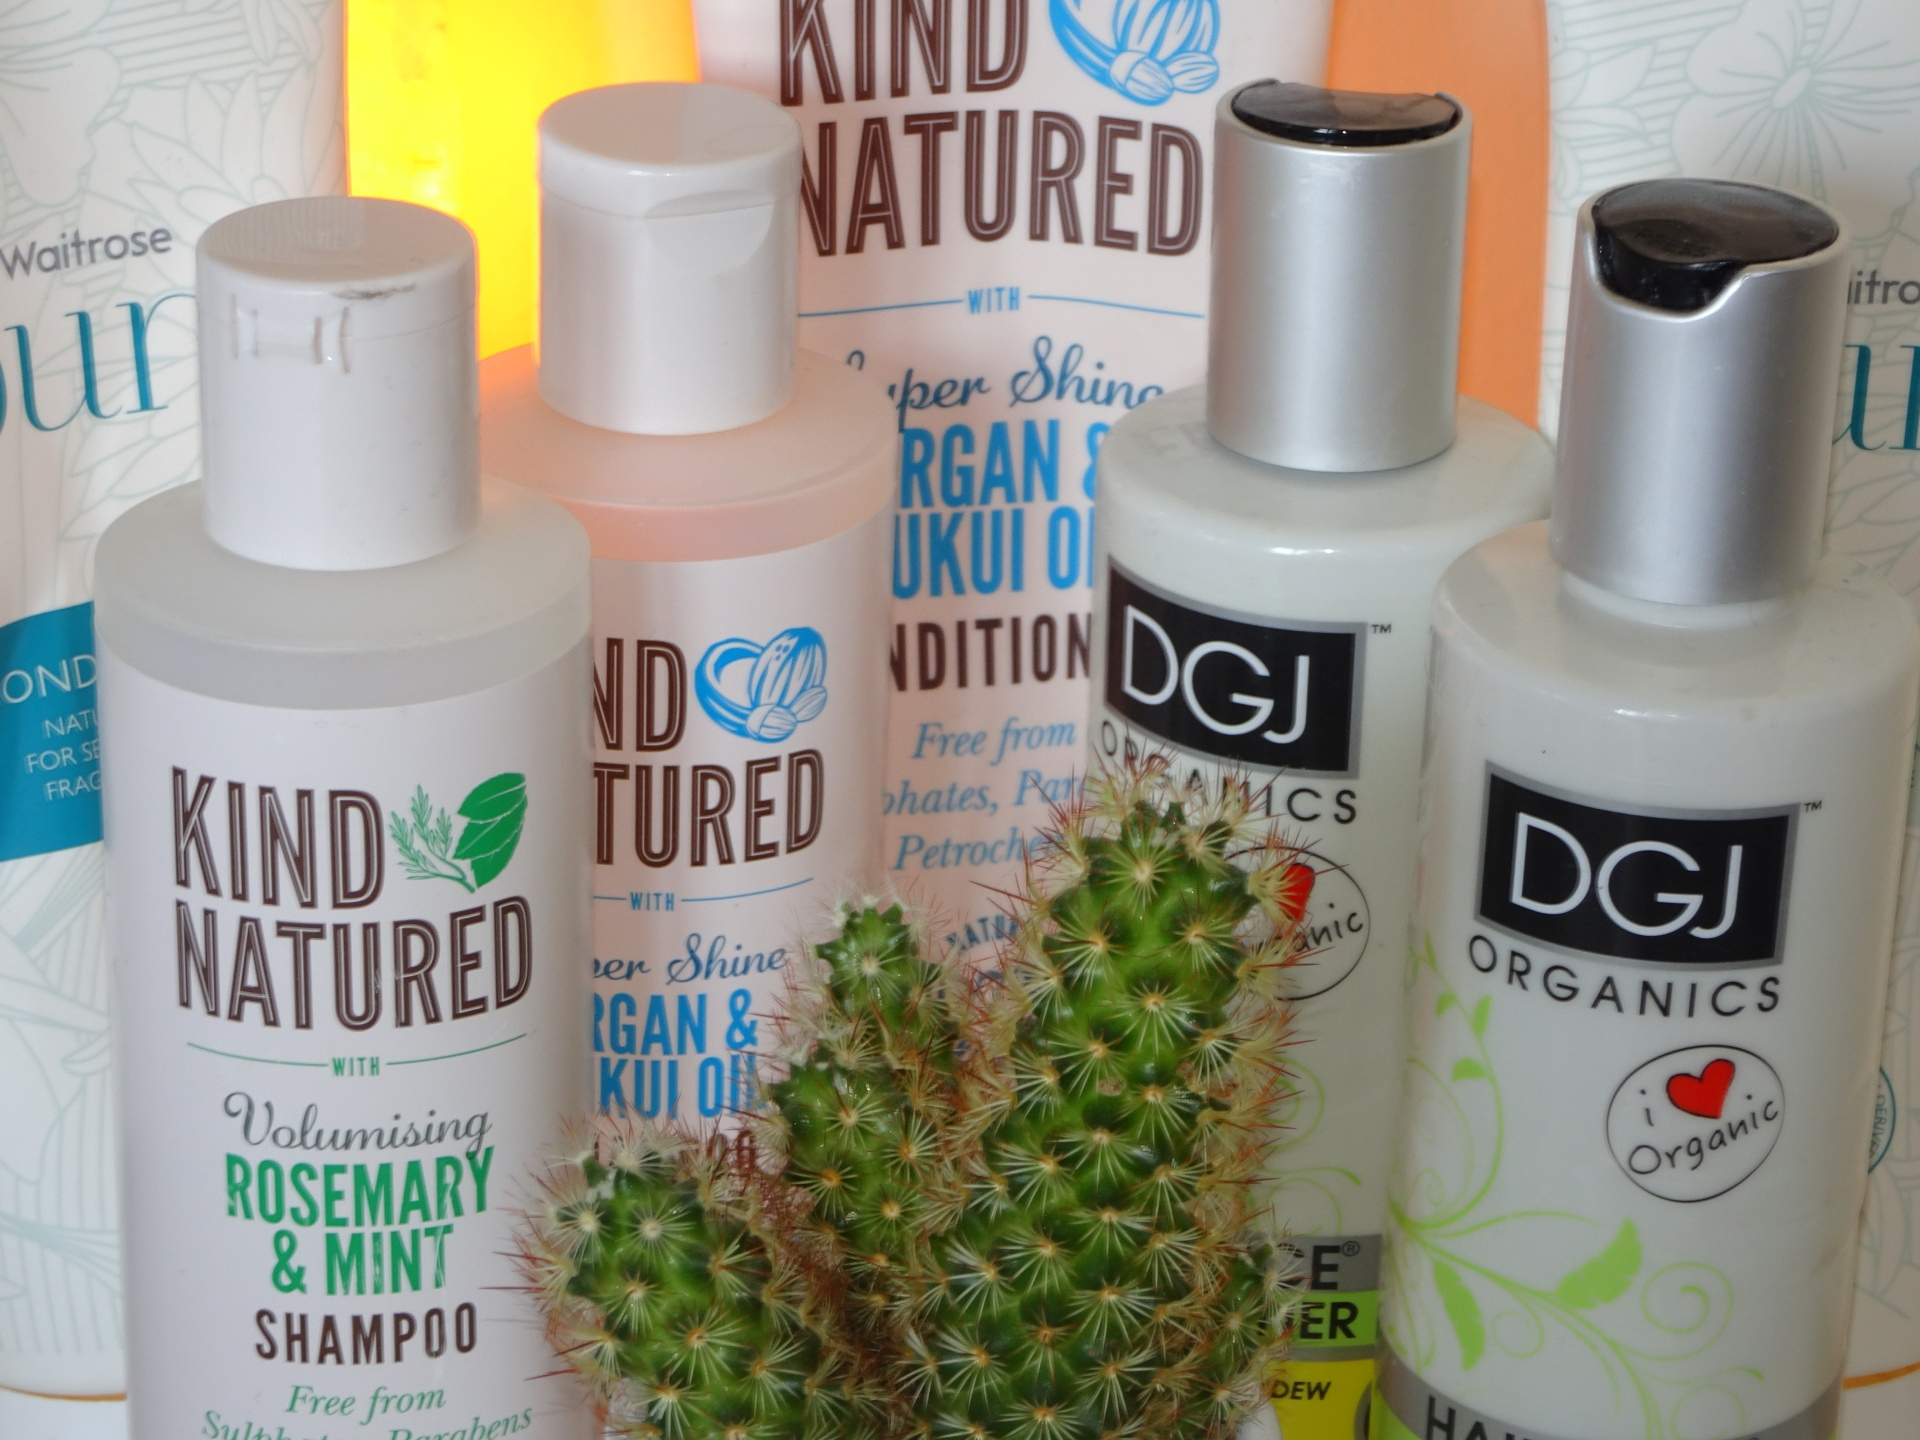 Review of Natural shampoo and conditioners